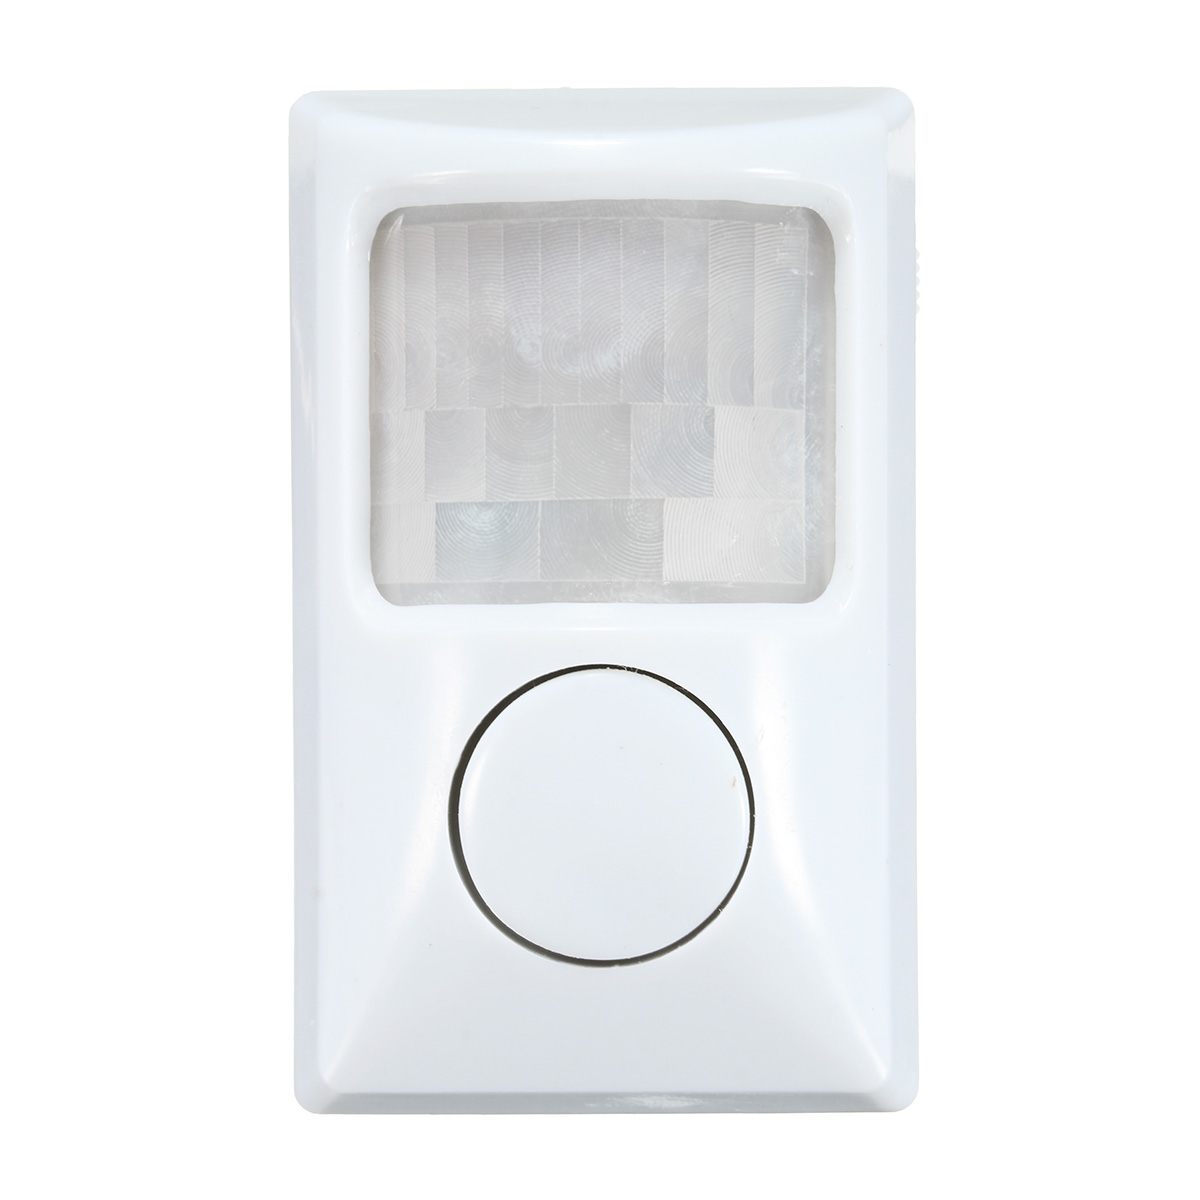 NEW 90dB Security Burglar Infrared Motion Sensor Detector PIR Alarm Home Shed Garage For Home Auto Security System